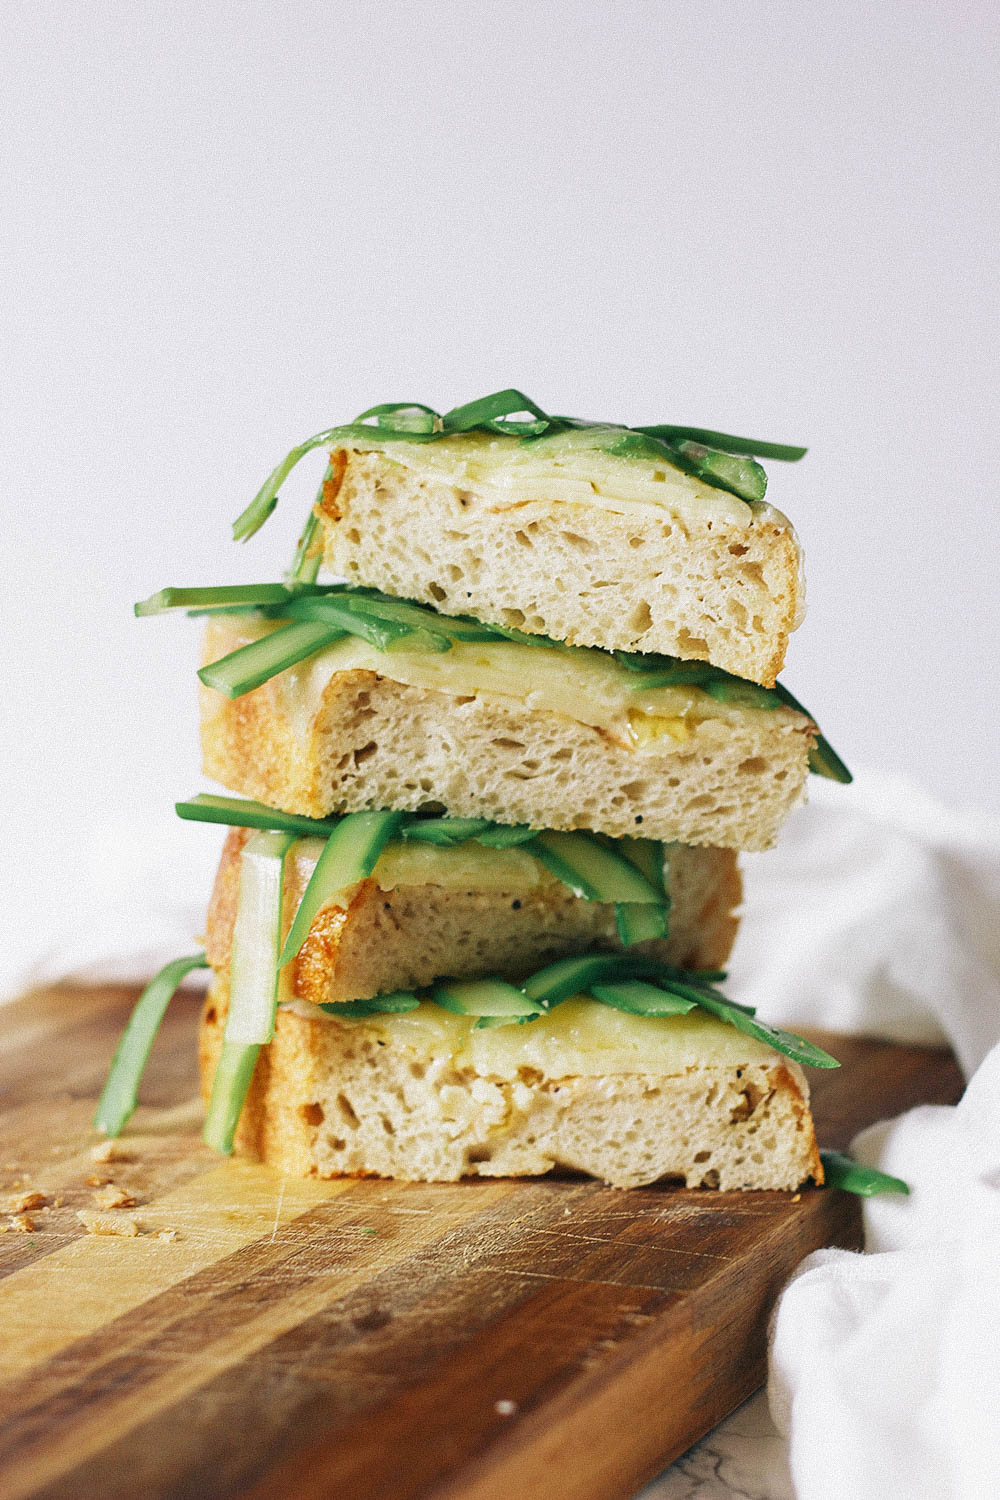 A simply beautiful lunch idea, this thick-cut toast is topped with cheese and thinly sliced asparagus. Get the full recipe at HomemadeBanana.com #lunch #recipe #toast #cheese